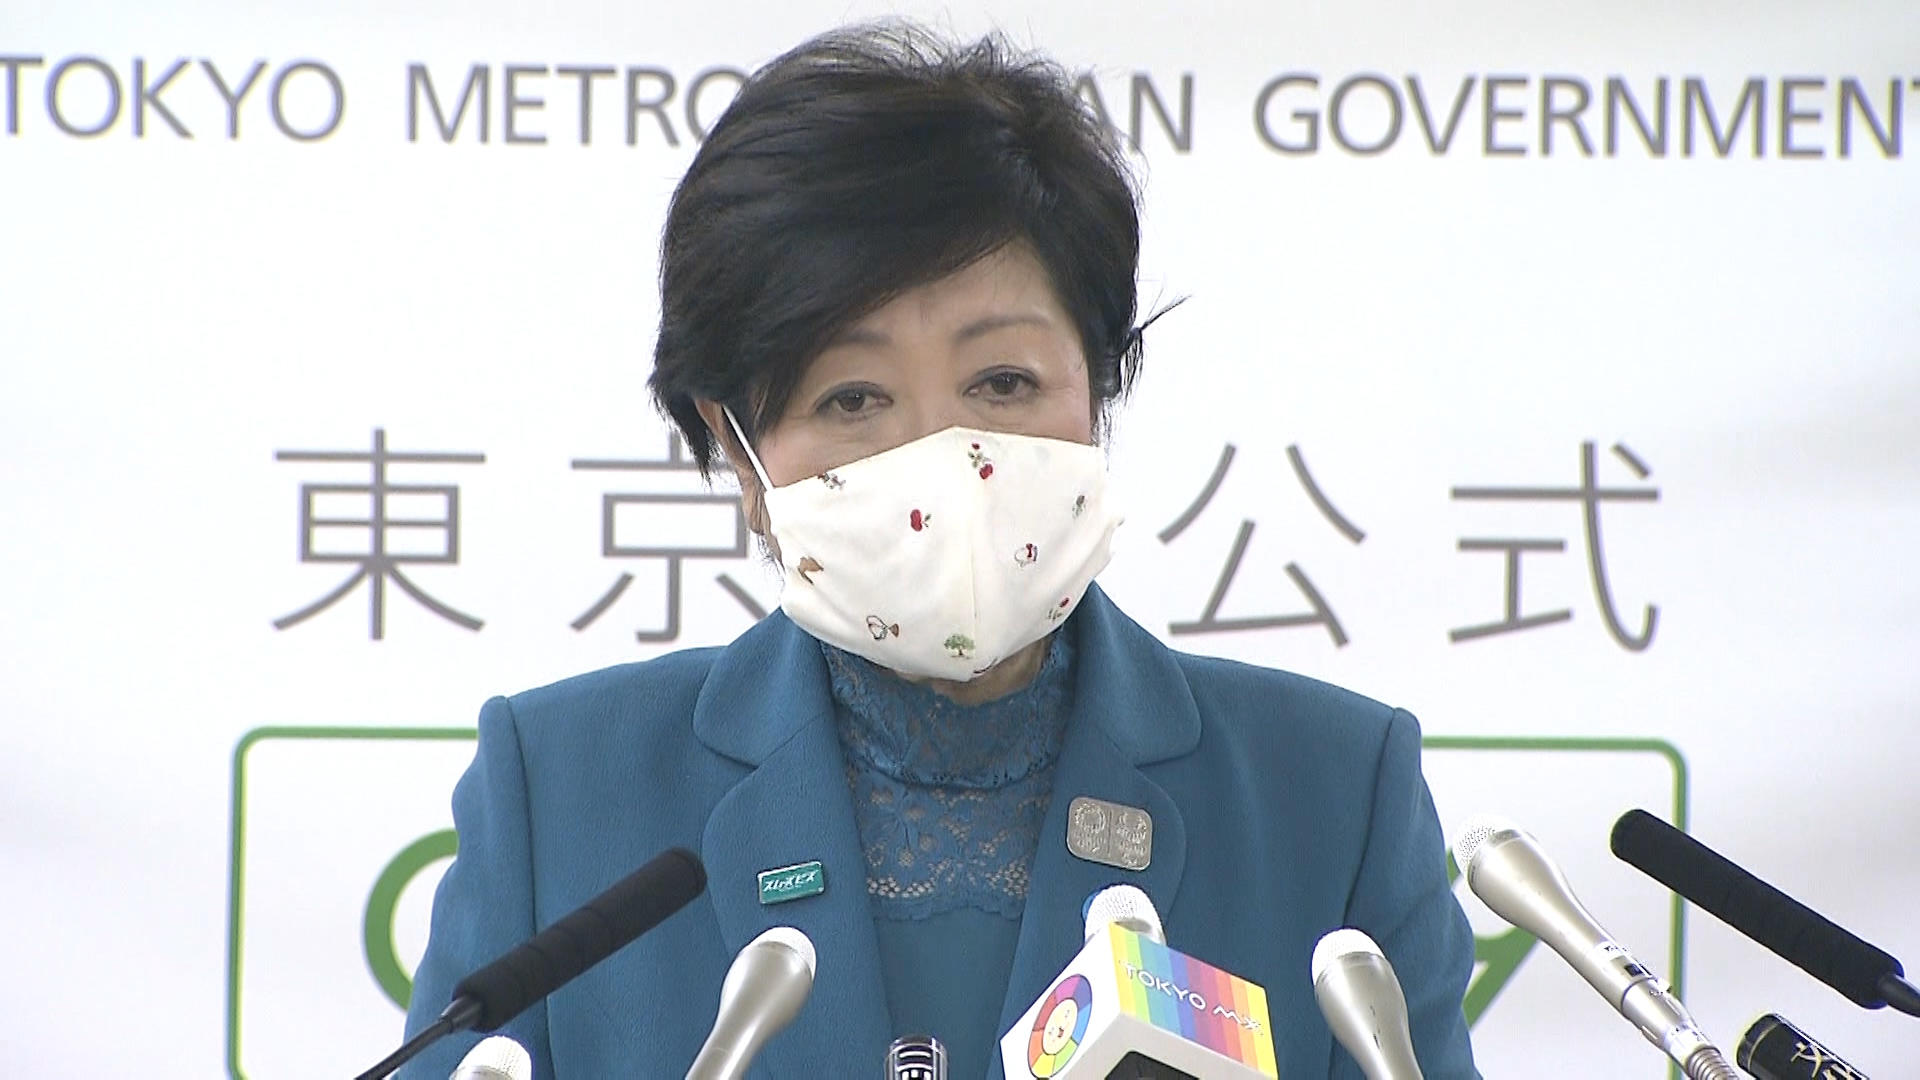 Tokyo governor steps up 'stay home' request